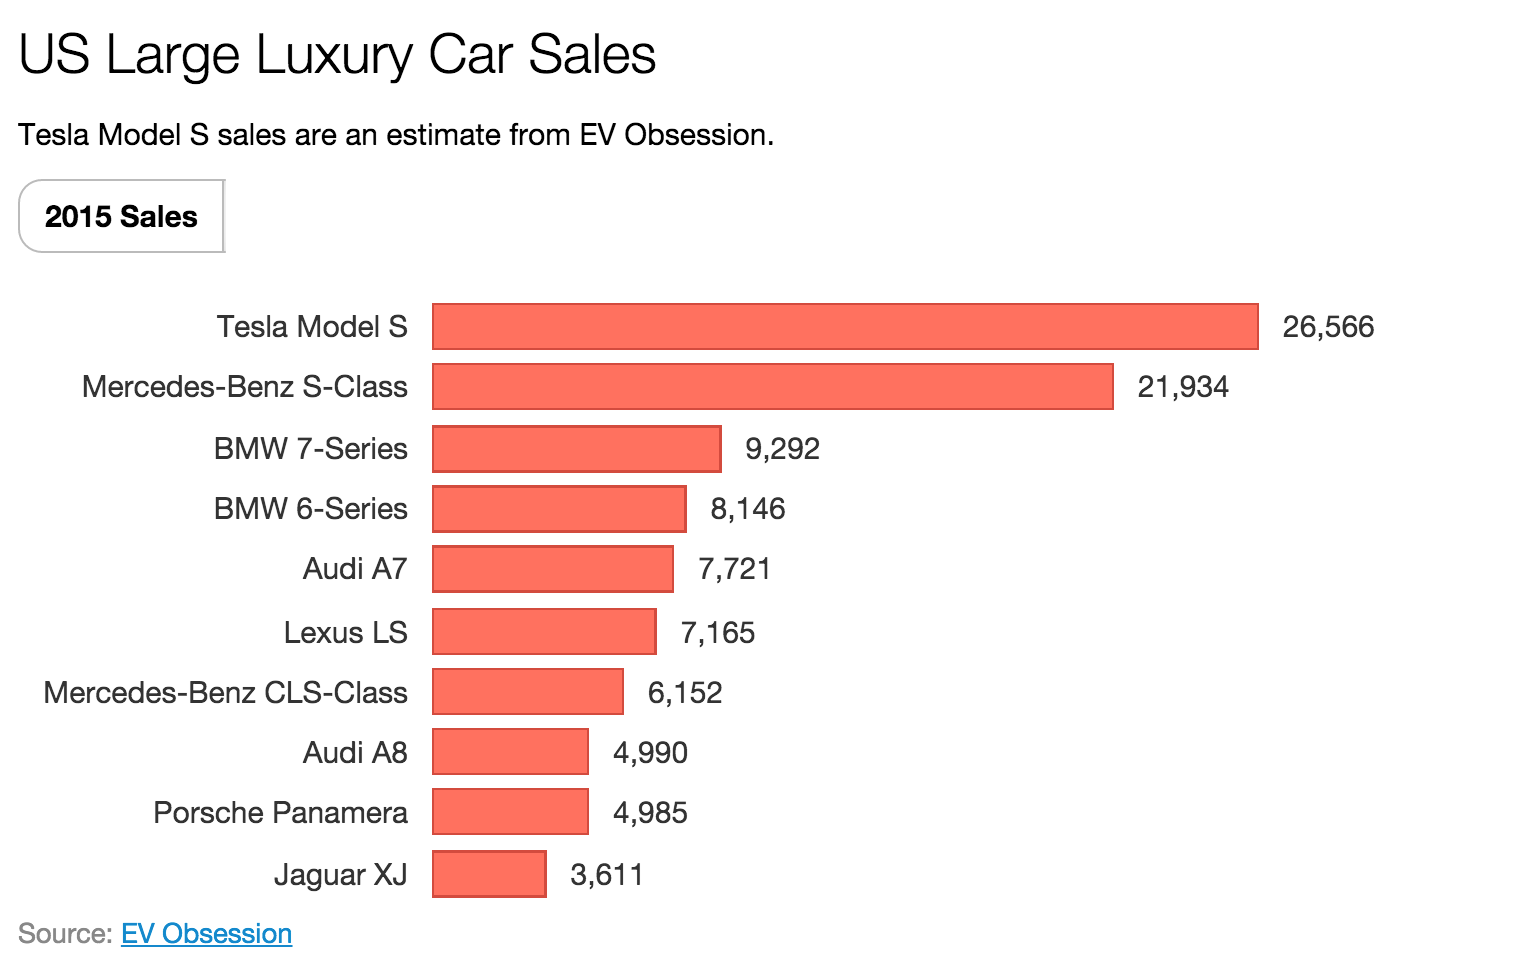 Tesla's Model S was the best-selling large luxury car in the U.S. last year, according to this estimate by EV Obsession...